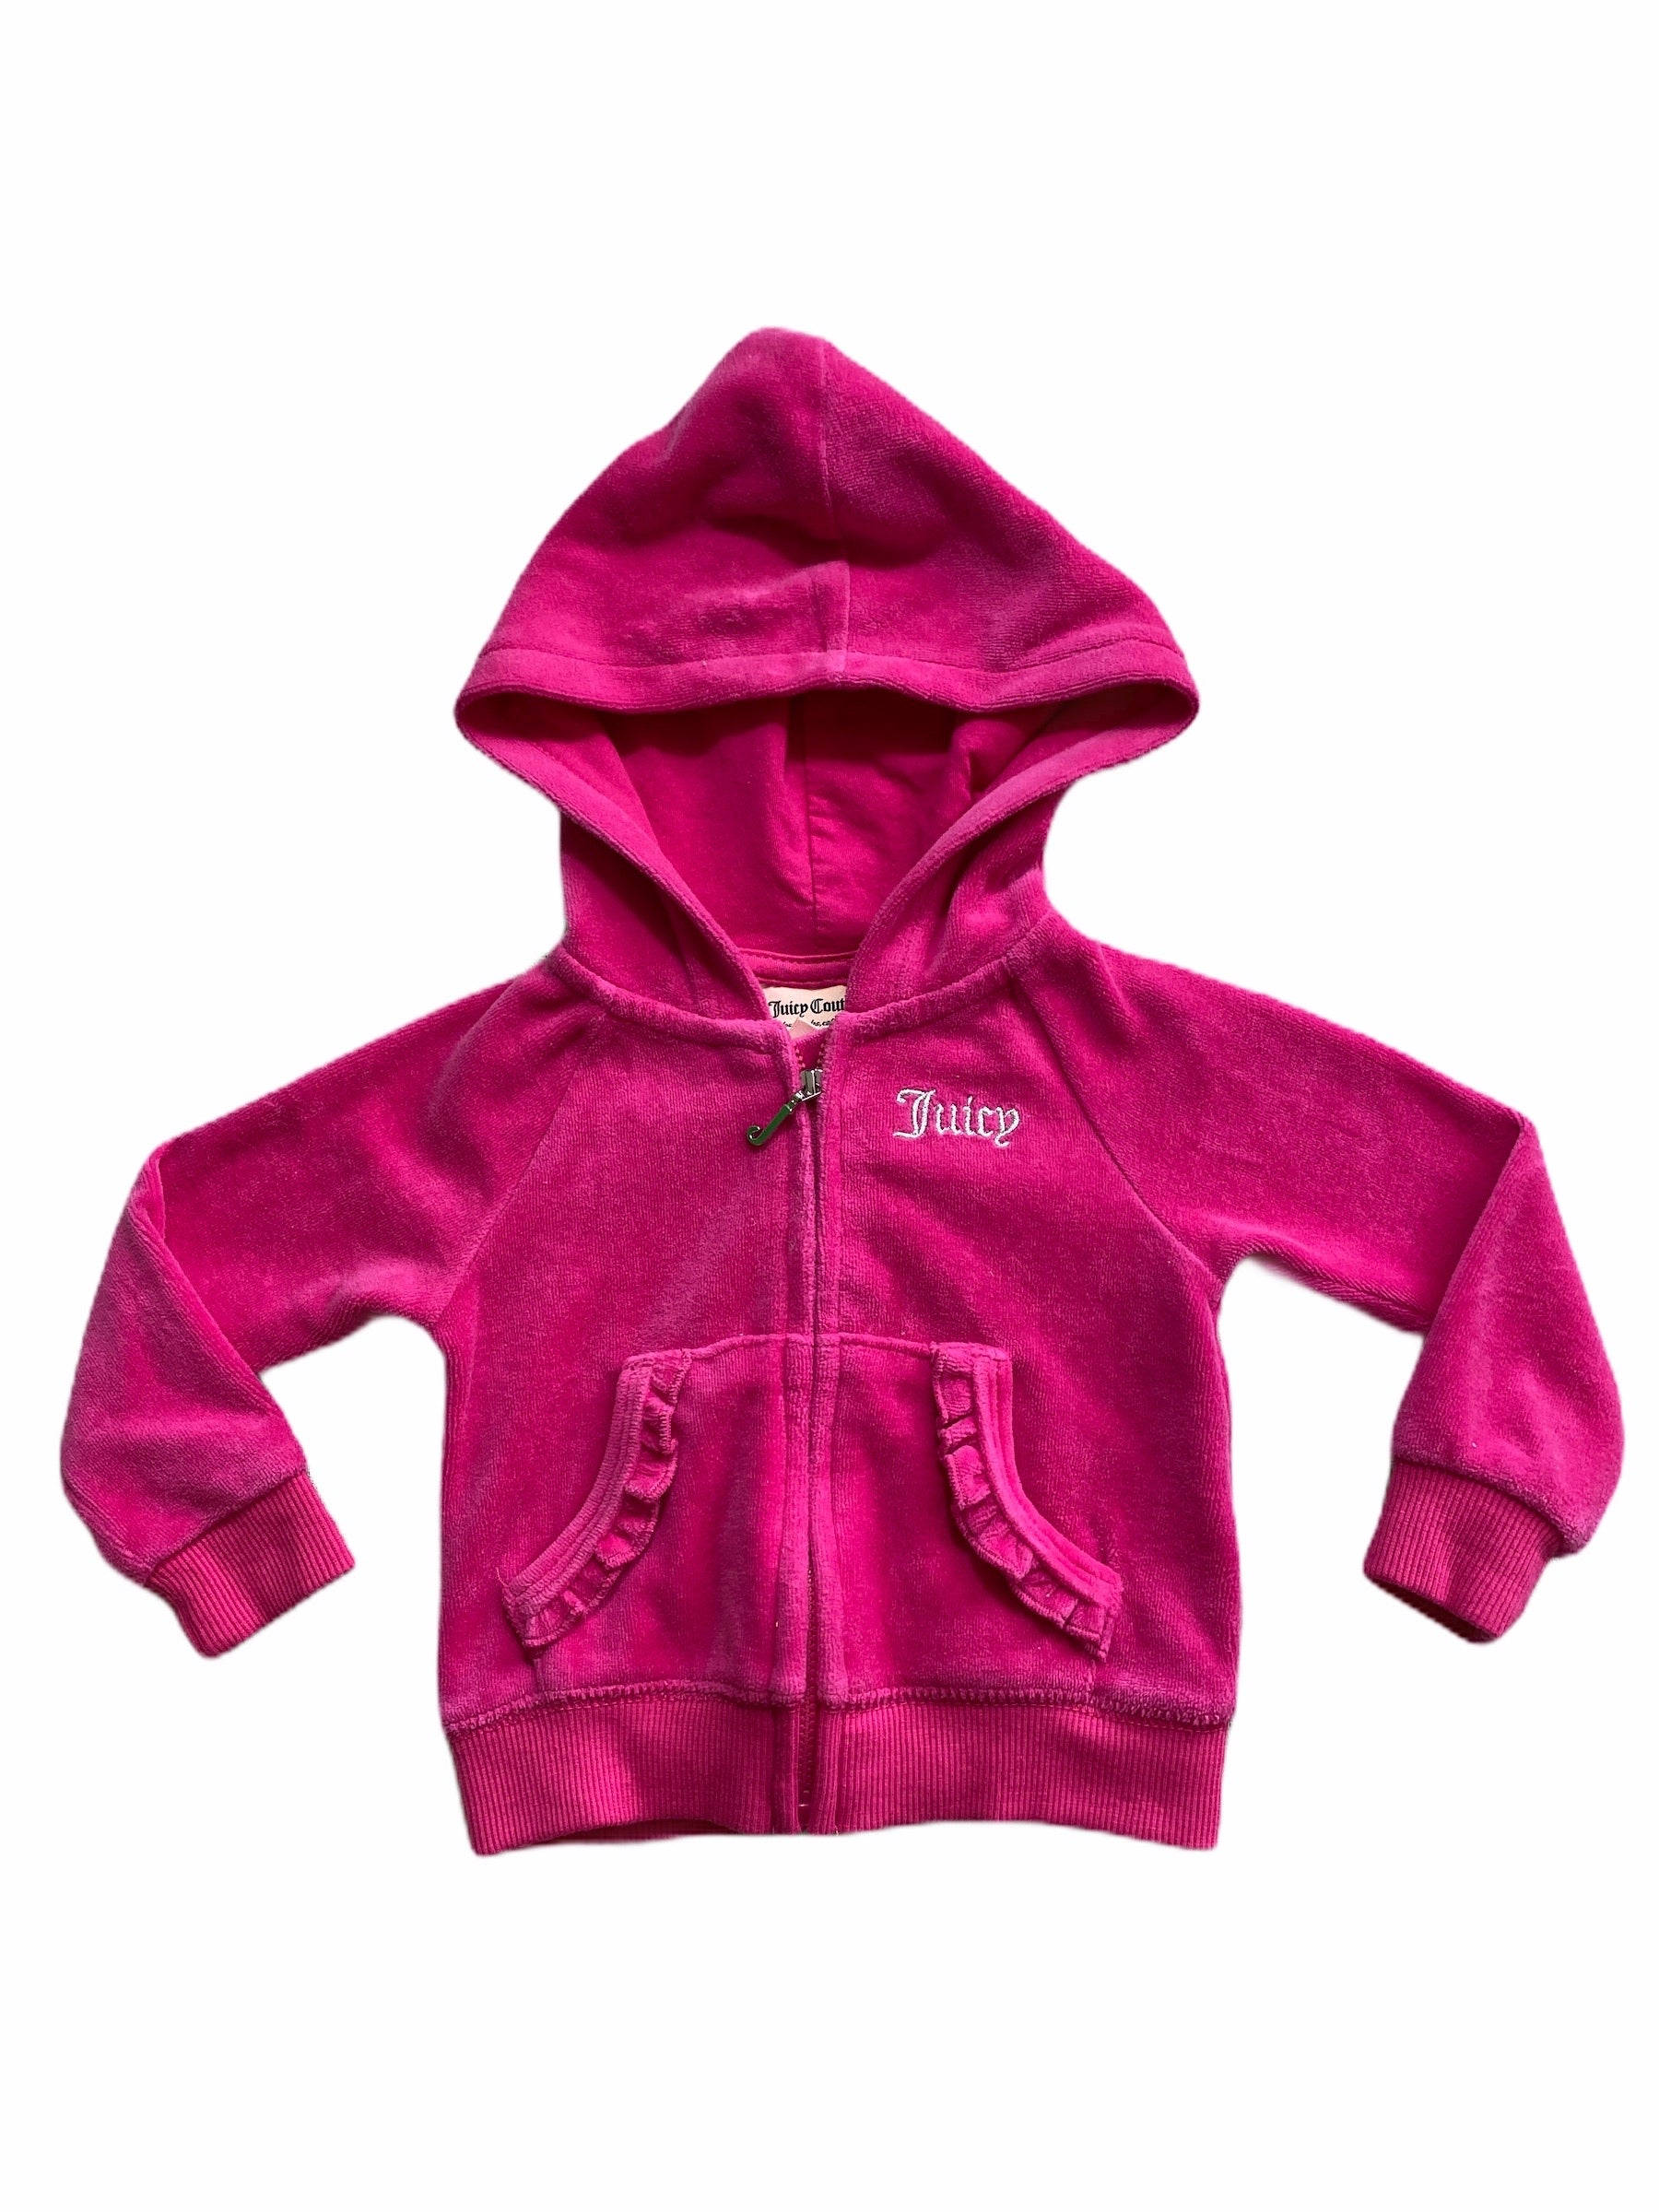 Juicy Couture Pink Velour Hooded Sweatshirt (12M Girls)